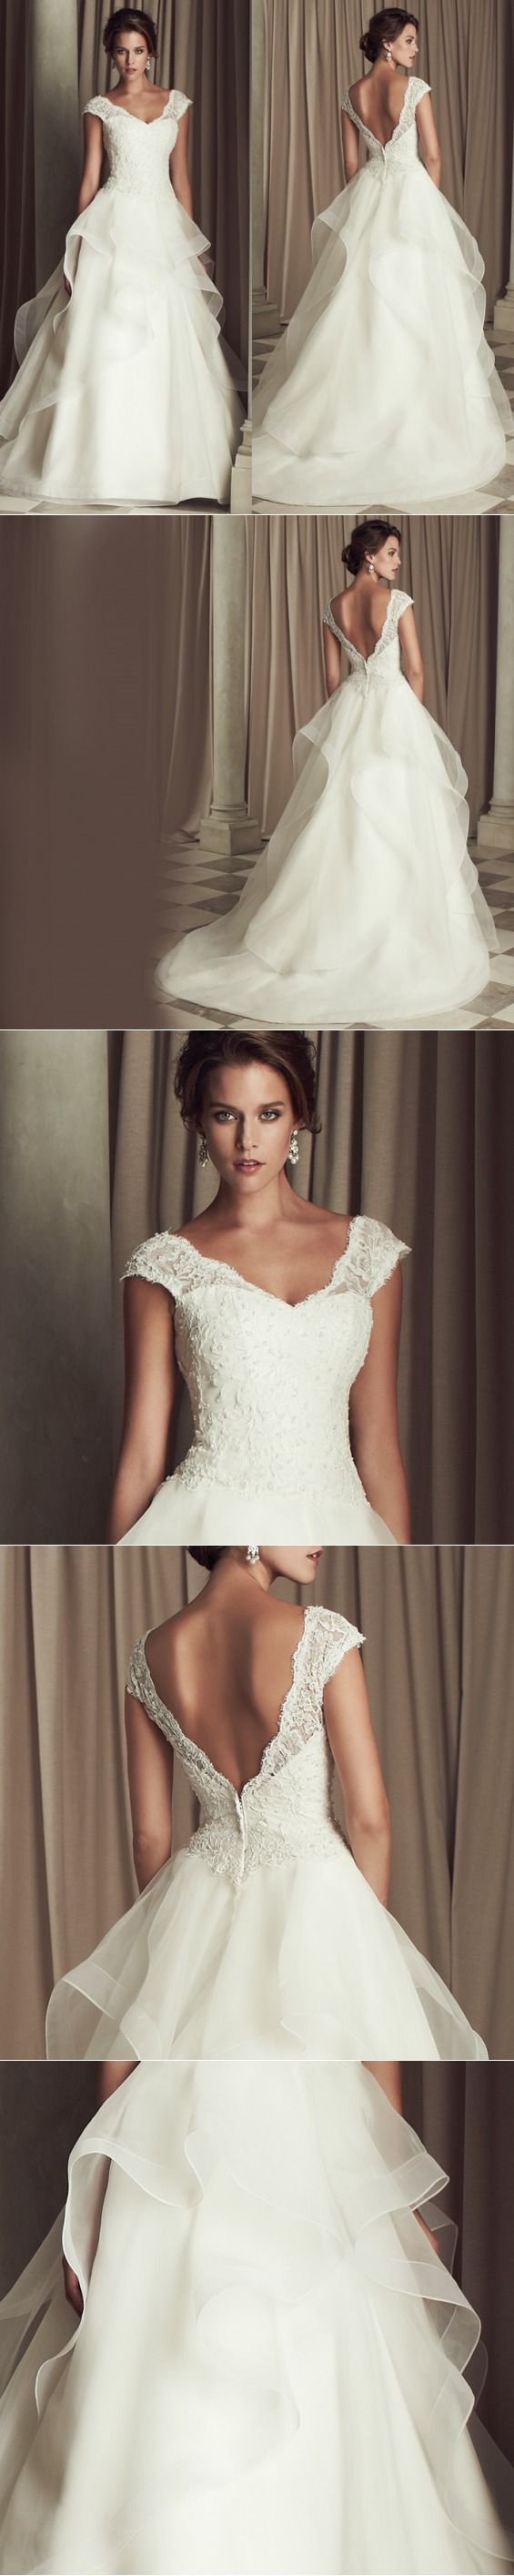 """Stylish Seaside Wedding Dresses Wedding Dresses Destination Weddings Sweetheart Neck """"Inexpensive Camouflage Bridal Dresses, Sixties Bridal Dress"""" Convertible Veil Buttons Down The Back Seersucker Off Shoulder Short Front Weddings Gowns Backyard Sweetheart Neck Pinstripe Pear Shaped Bodies Ideas Small Bust Mature."""